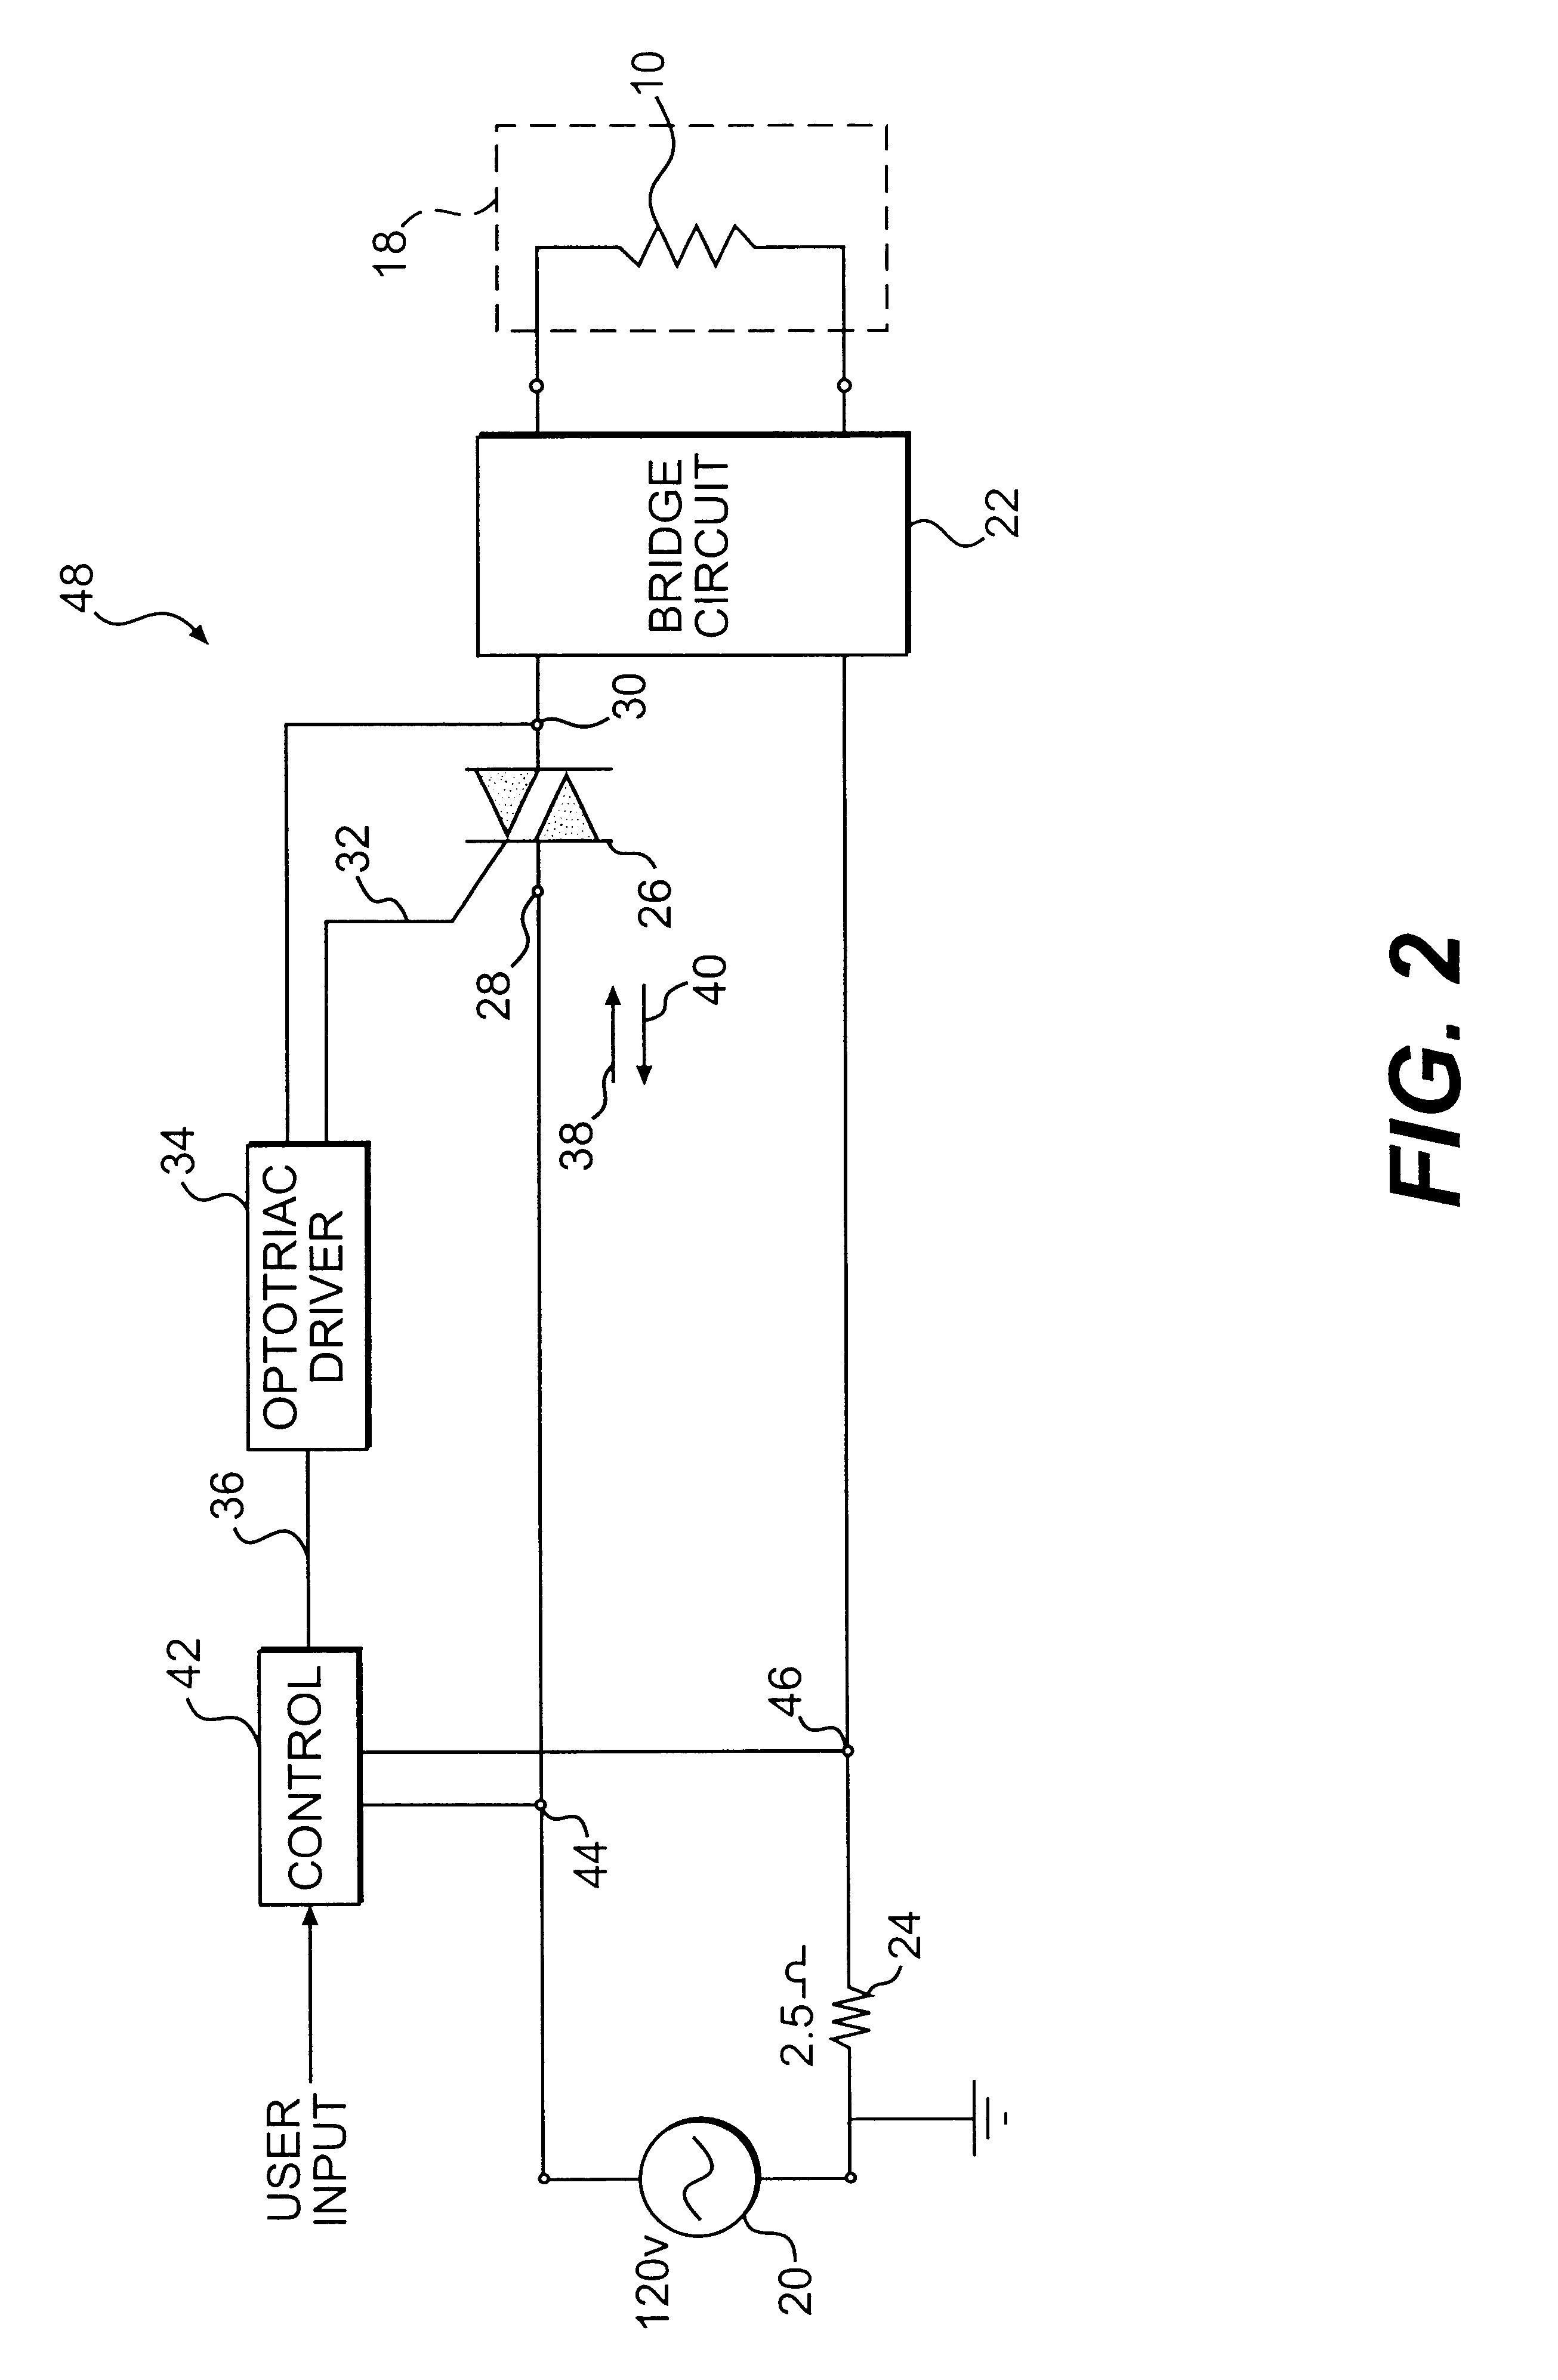 Patent Us6222162 - Electric Blanket And Control